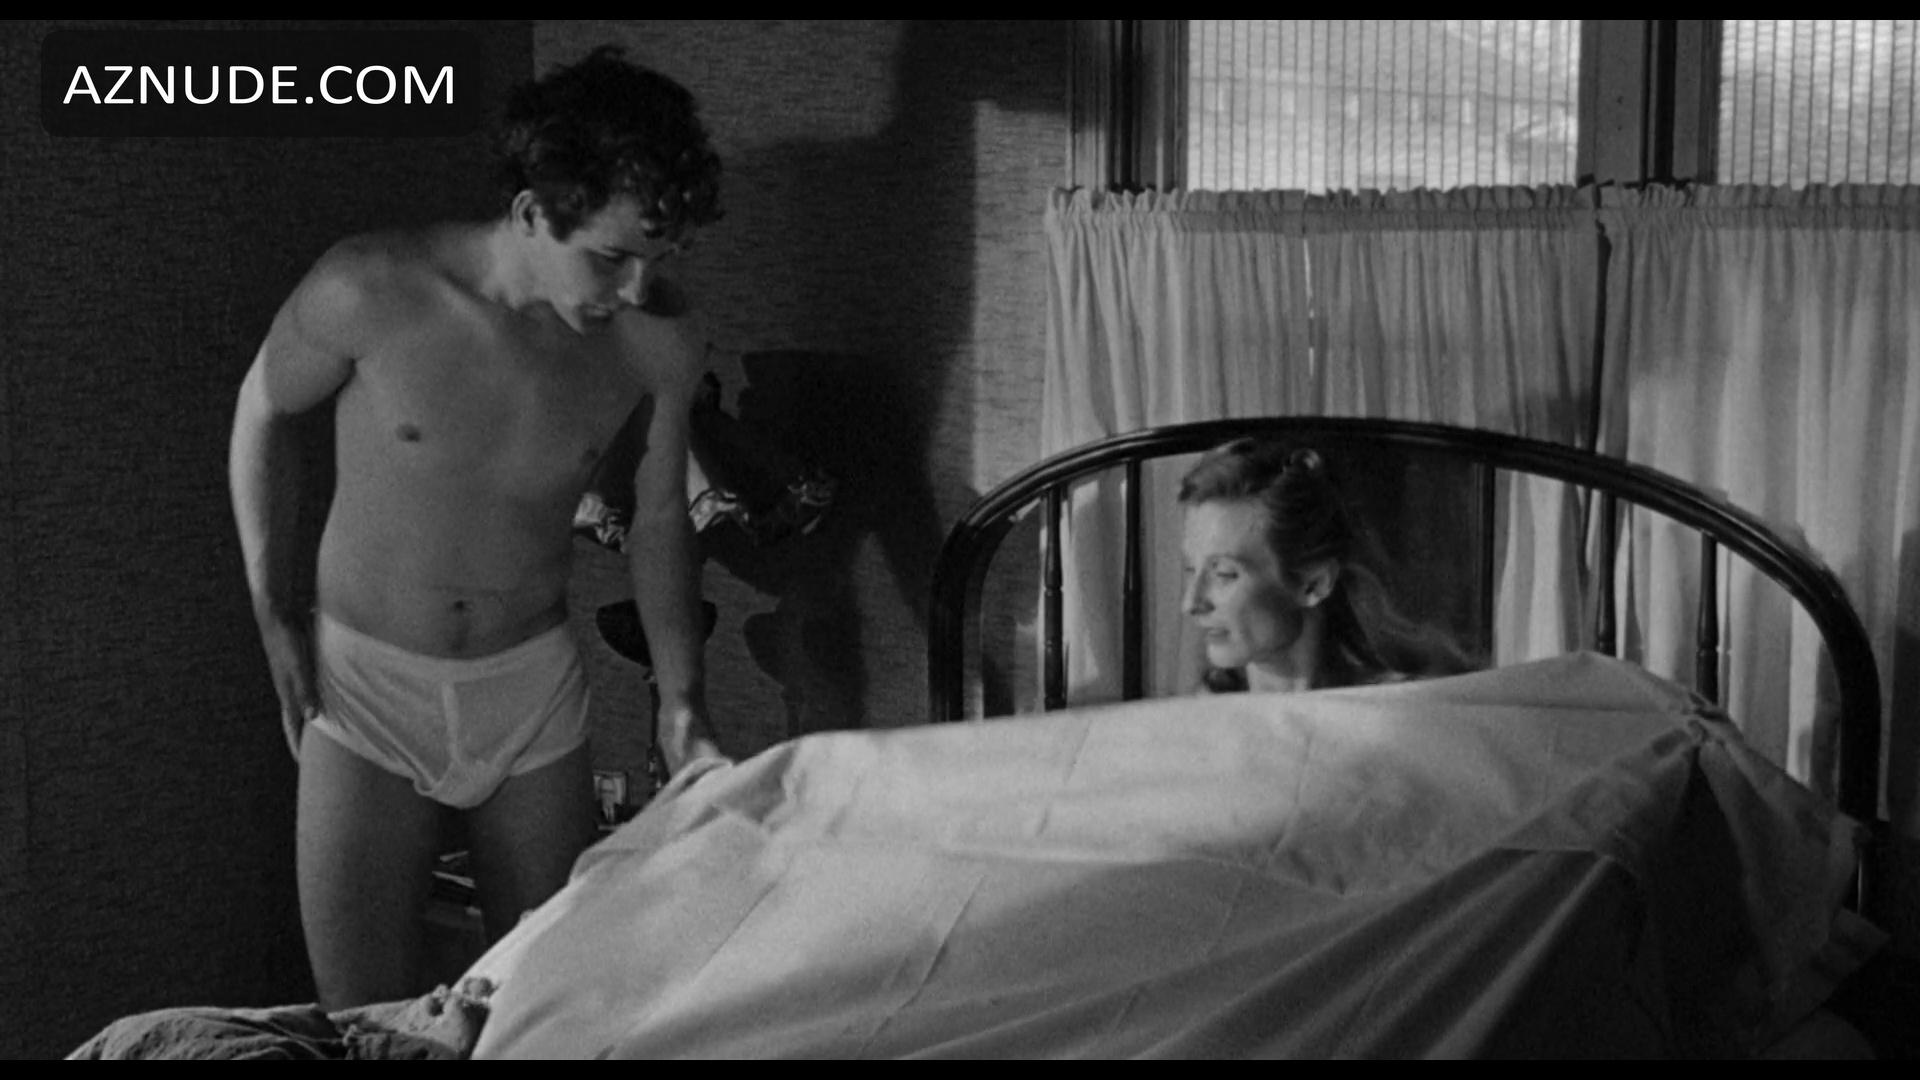 The Last Picture Show Nude Scenes - Aznude Men-1280